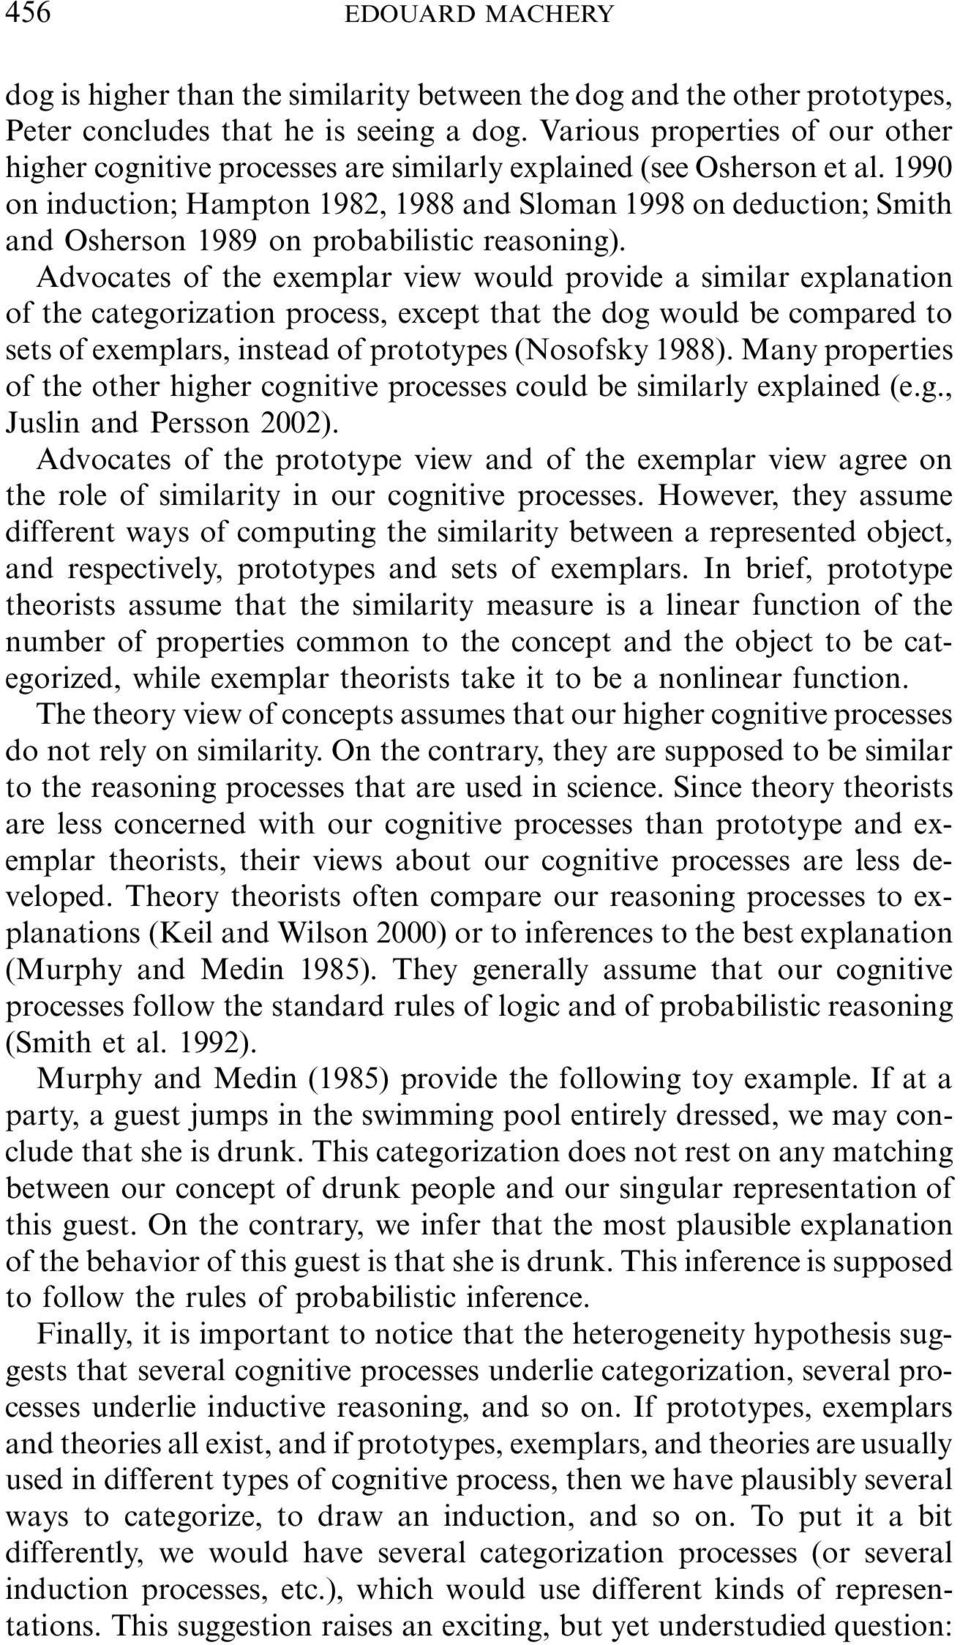 1990 on induction; Hampton 1982, 1988 and Sloman 1998 on deduction; Smith and Osherson 1989 on probabilistic reasoning).